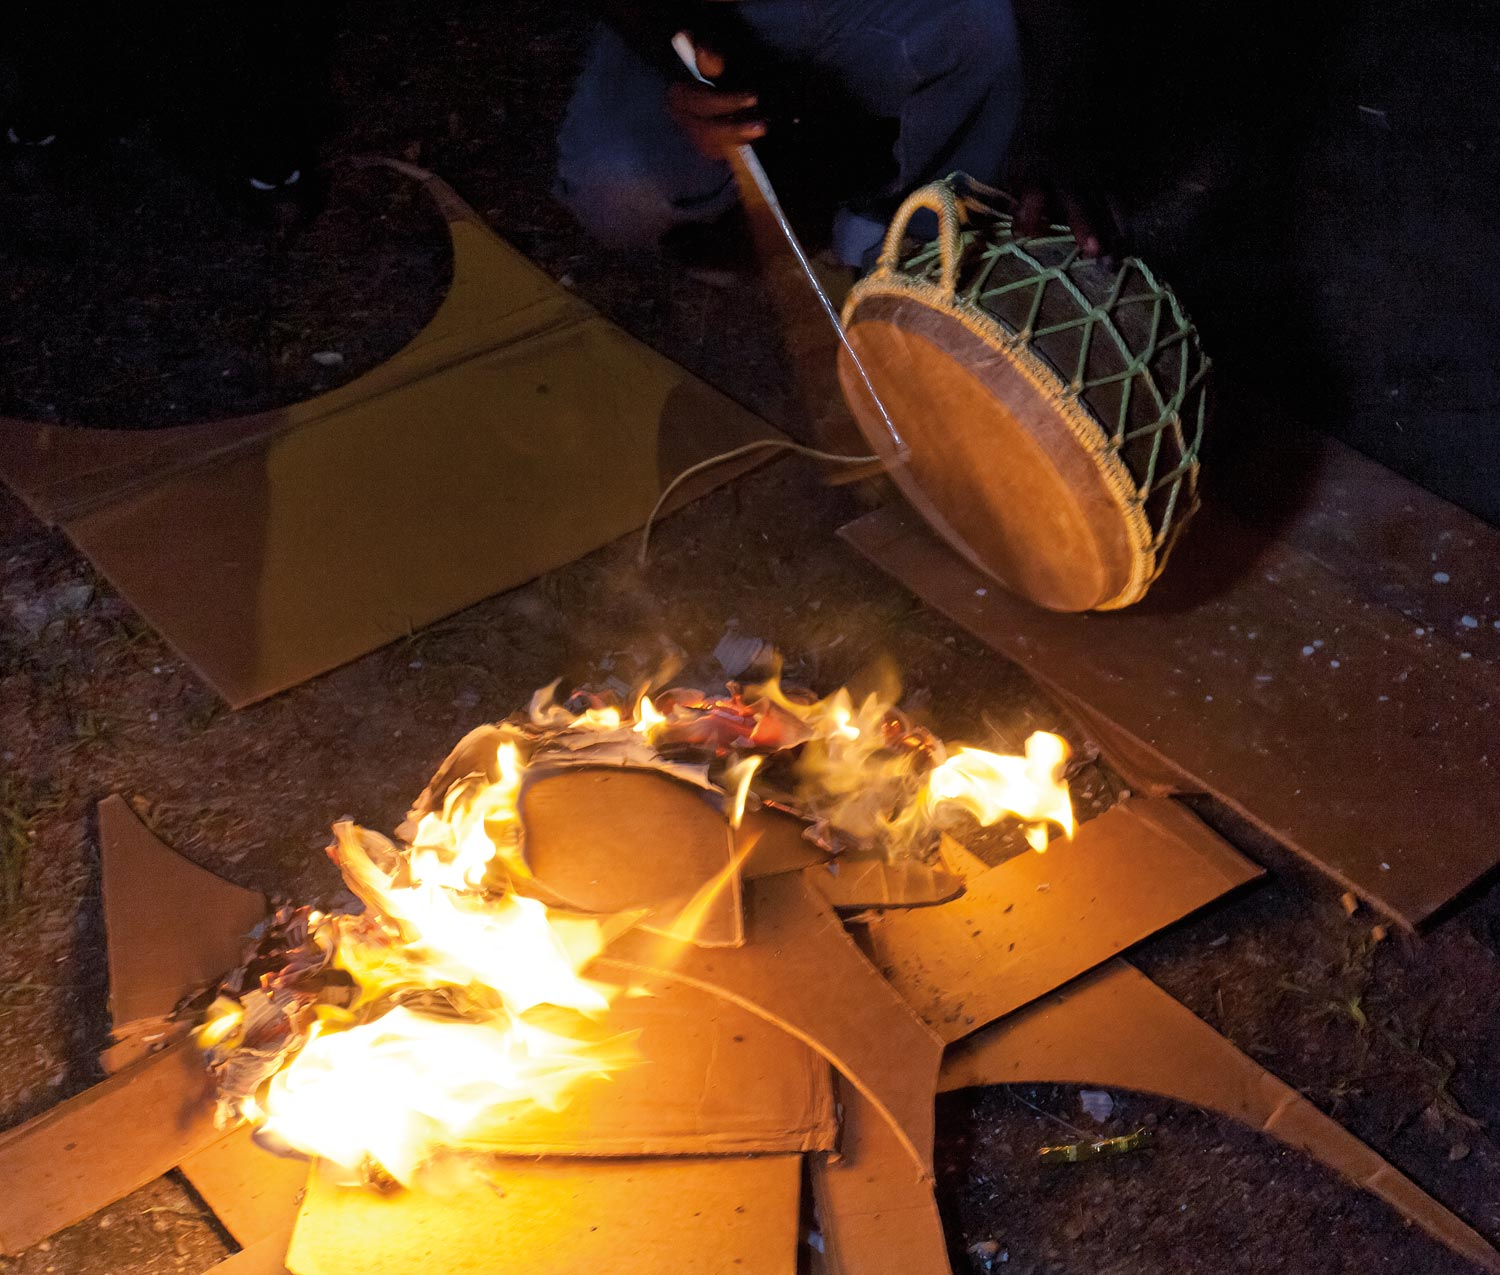 Heating a goatskin kettledrum to tune its pitch. Photograph by Mark Lyndersay